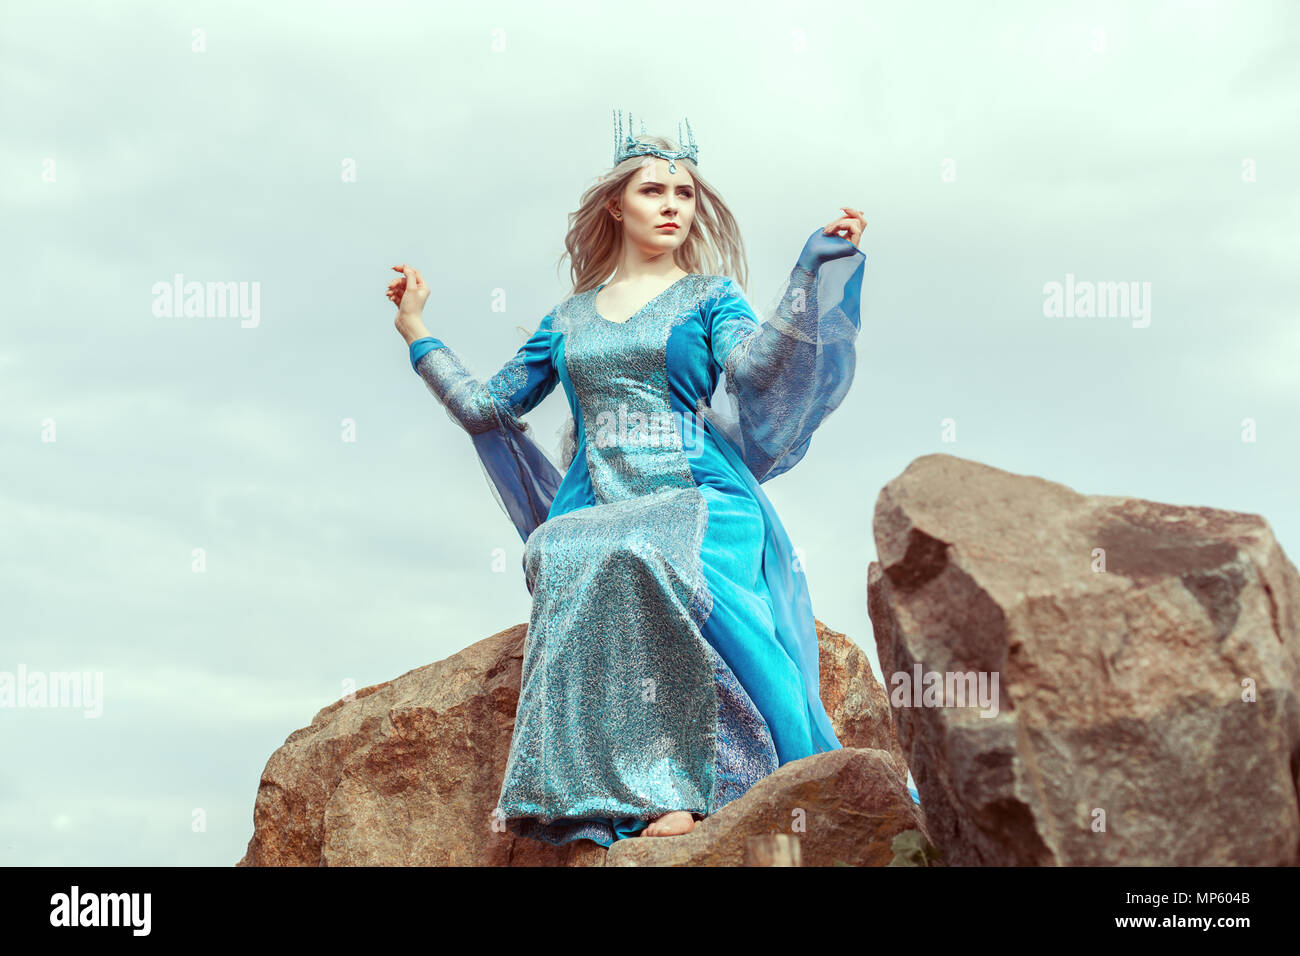 Beautiful elf woman in blue dress sits on a stone. - Stock Image